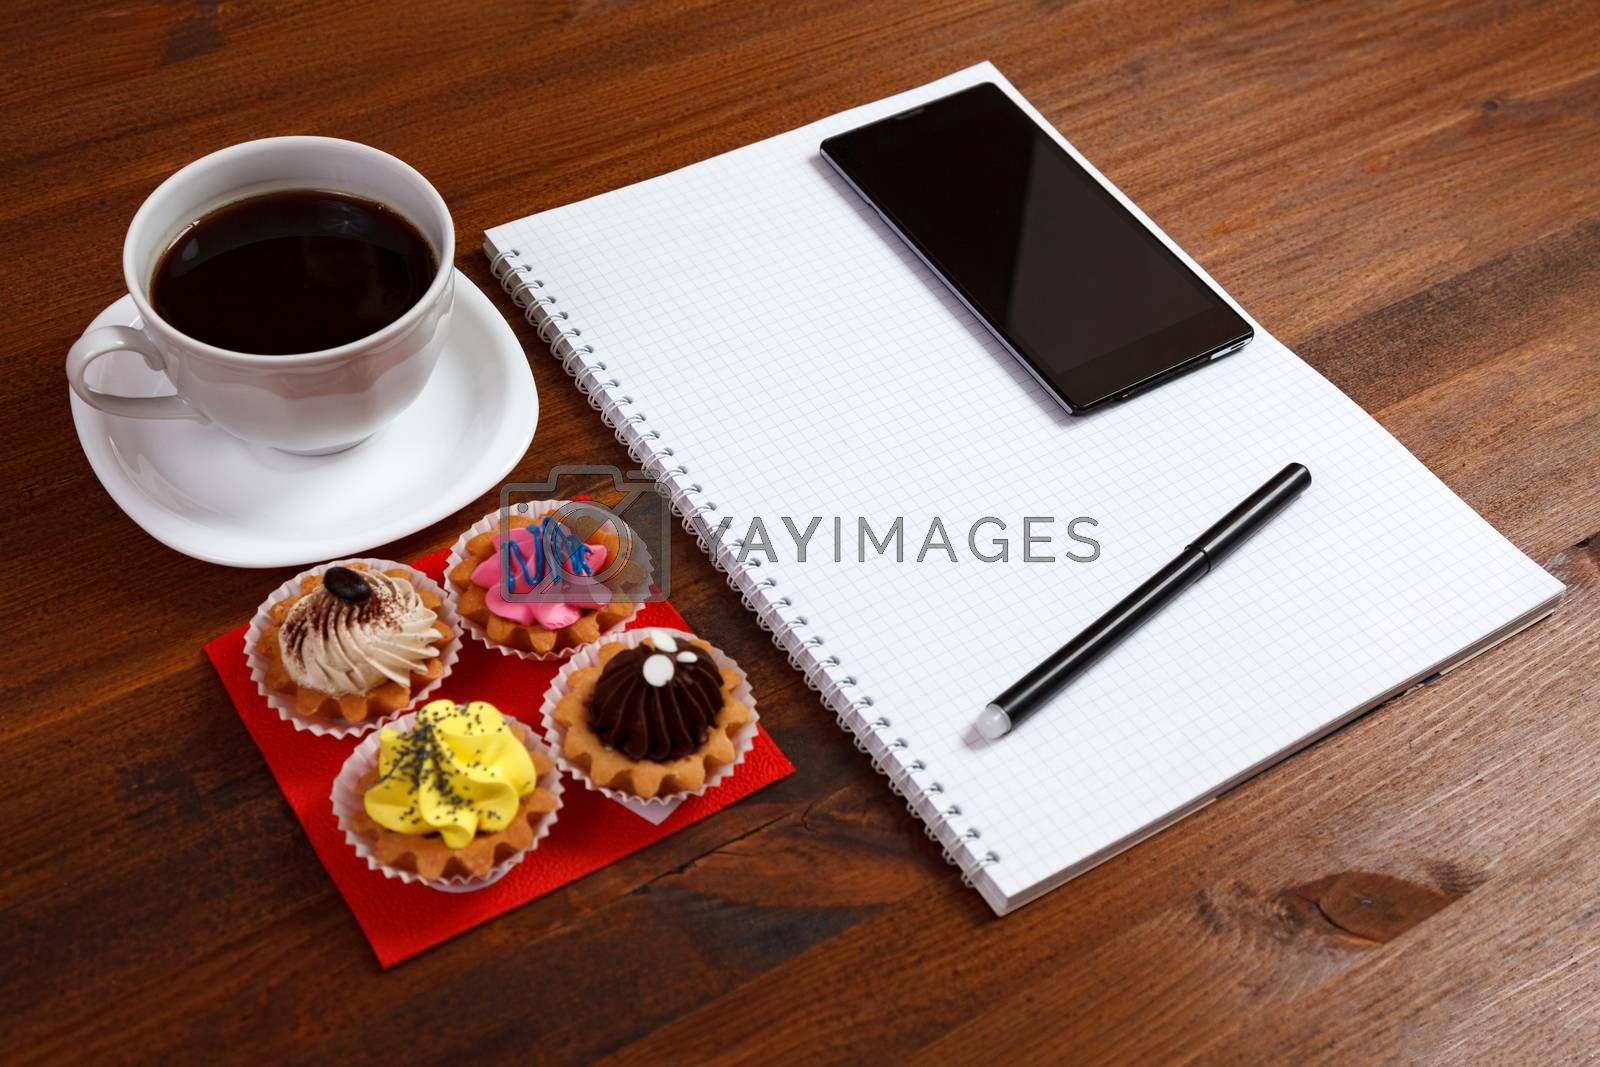 White coffee cup with notebook, four cupcakes, smartphone and pen on a wooden table.